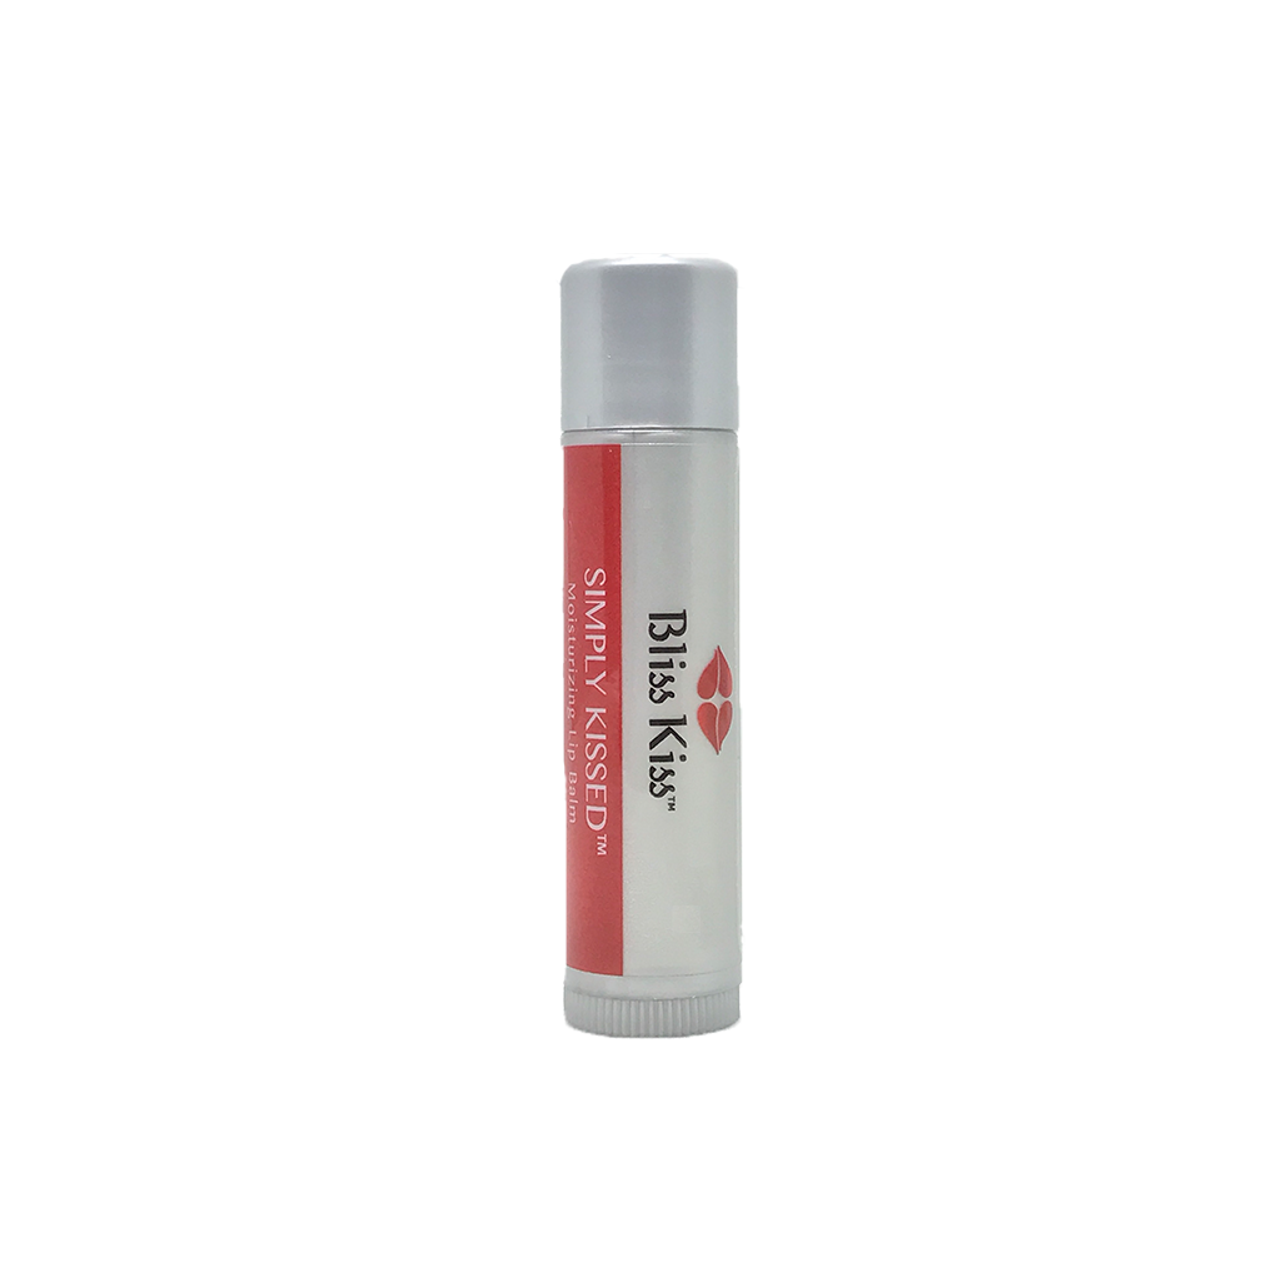 Simply Kissed™ Moisturizing Lip Balm - Treat your lips to silky smooth moisture. This quick-absorb lip balm keeps your lips silky soft all day long (and all night strong). Your lips will always be ready to be Simply Kissed™. No additives. No preservatives. No colorants. No kidding.